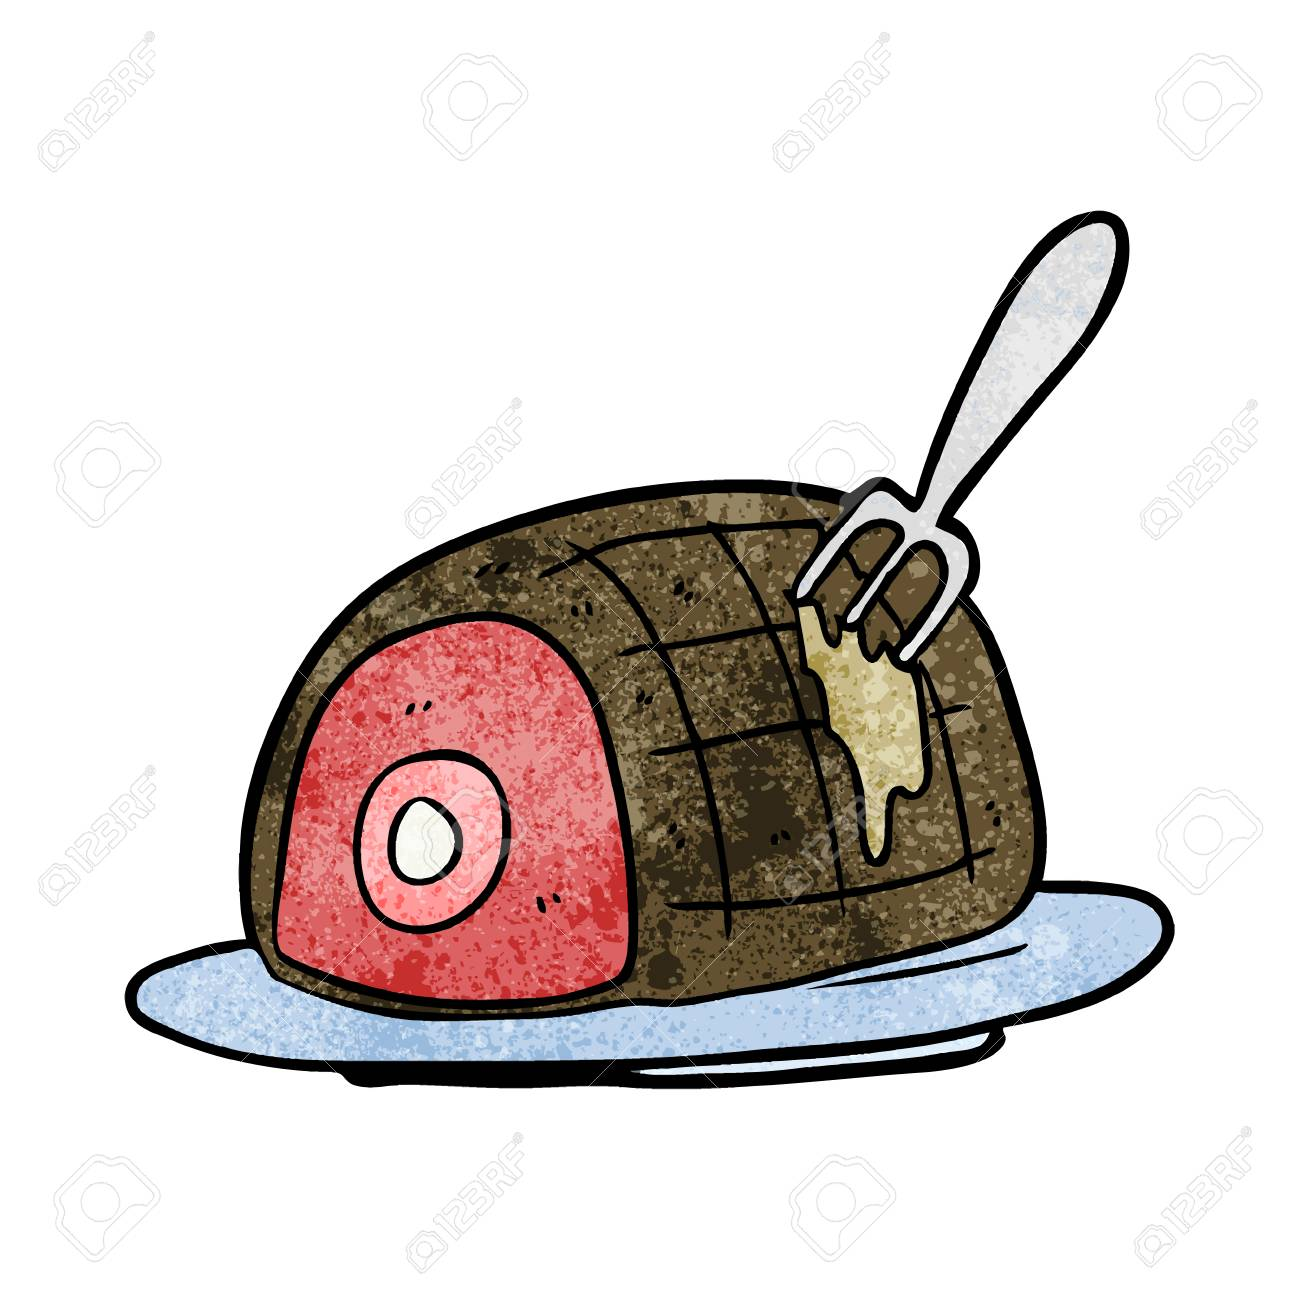 cartoon plate of cooked beef royalty free cliparts vectors and stock illustration image 95134790 123rf com